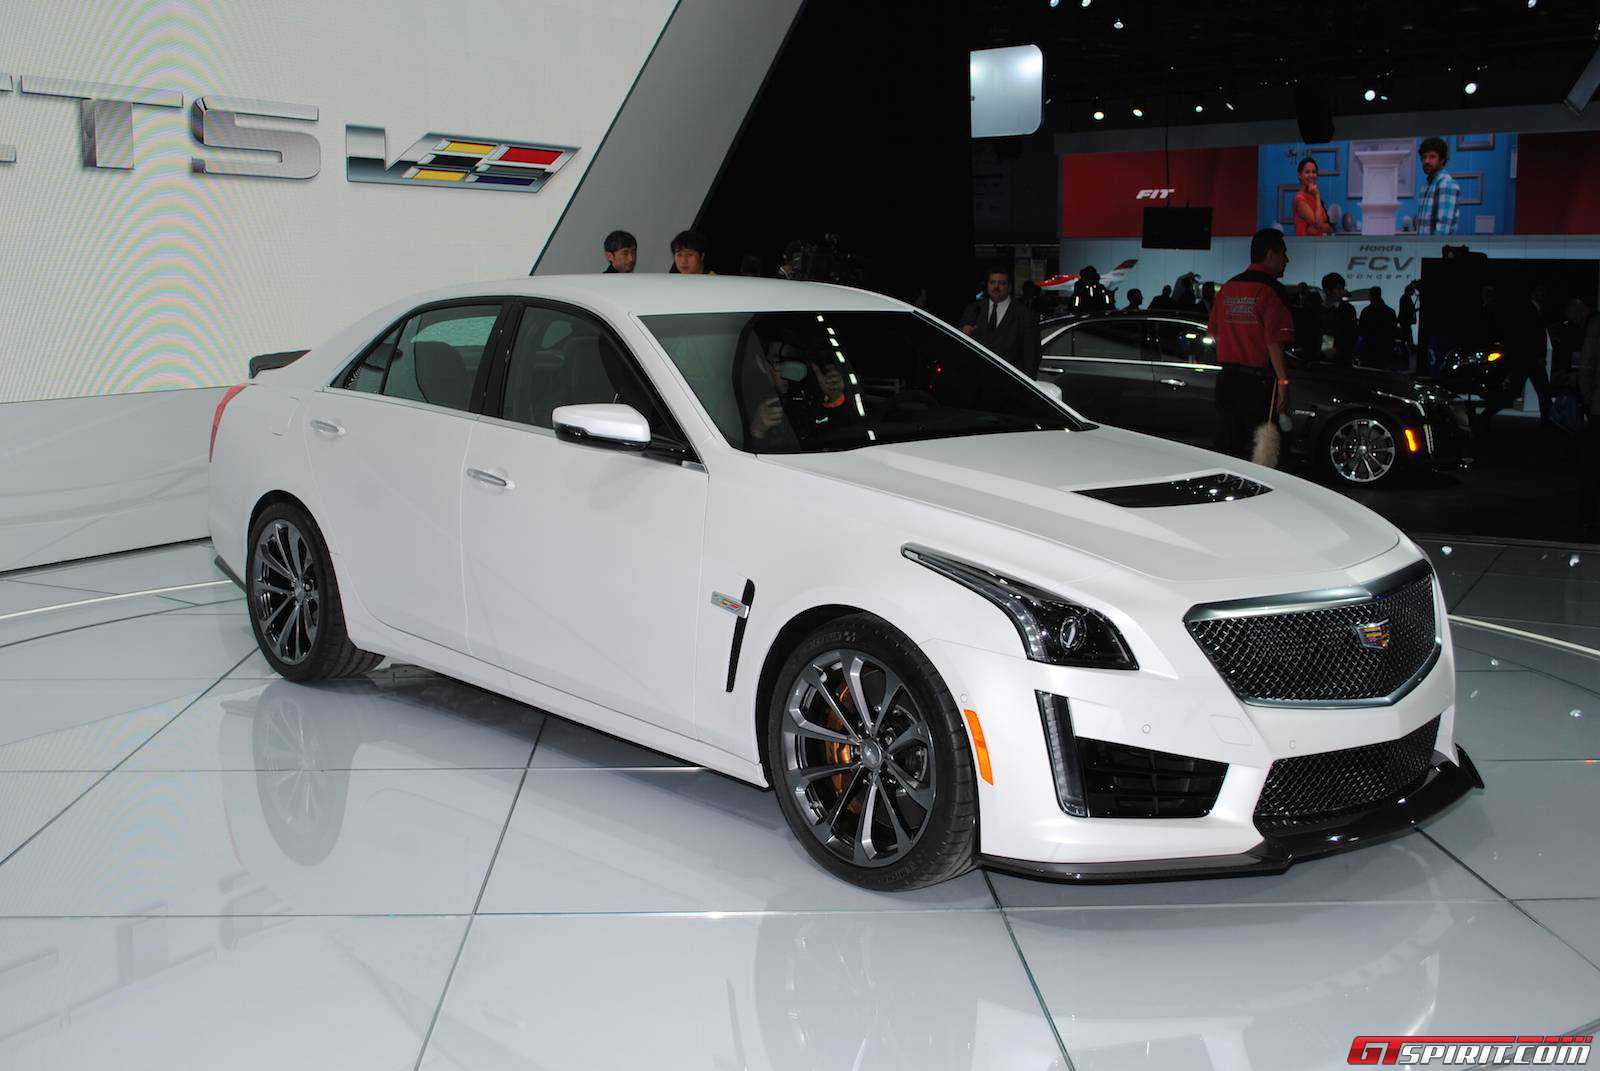 cadillac ats v and cts v priced in europe gtspirit. Black Bedroom Furniture Sets. Home Design Ideas